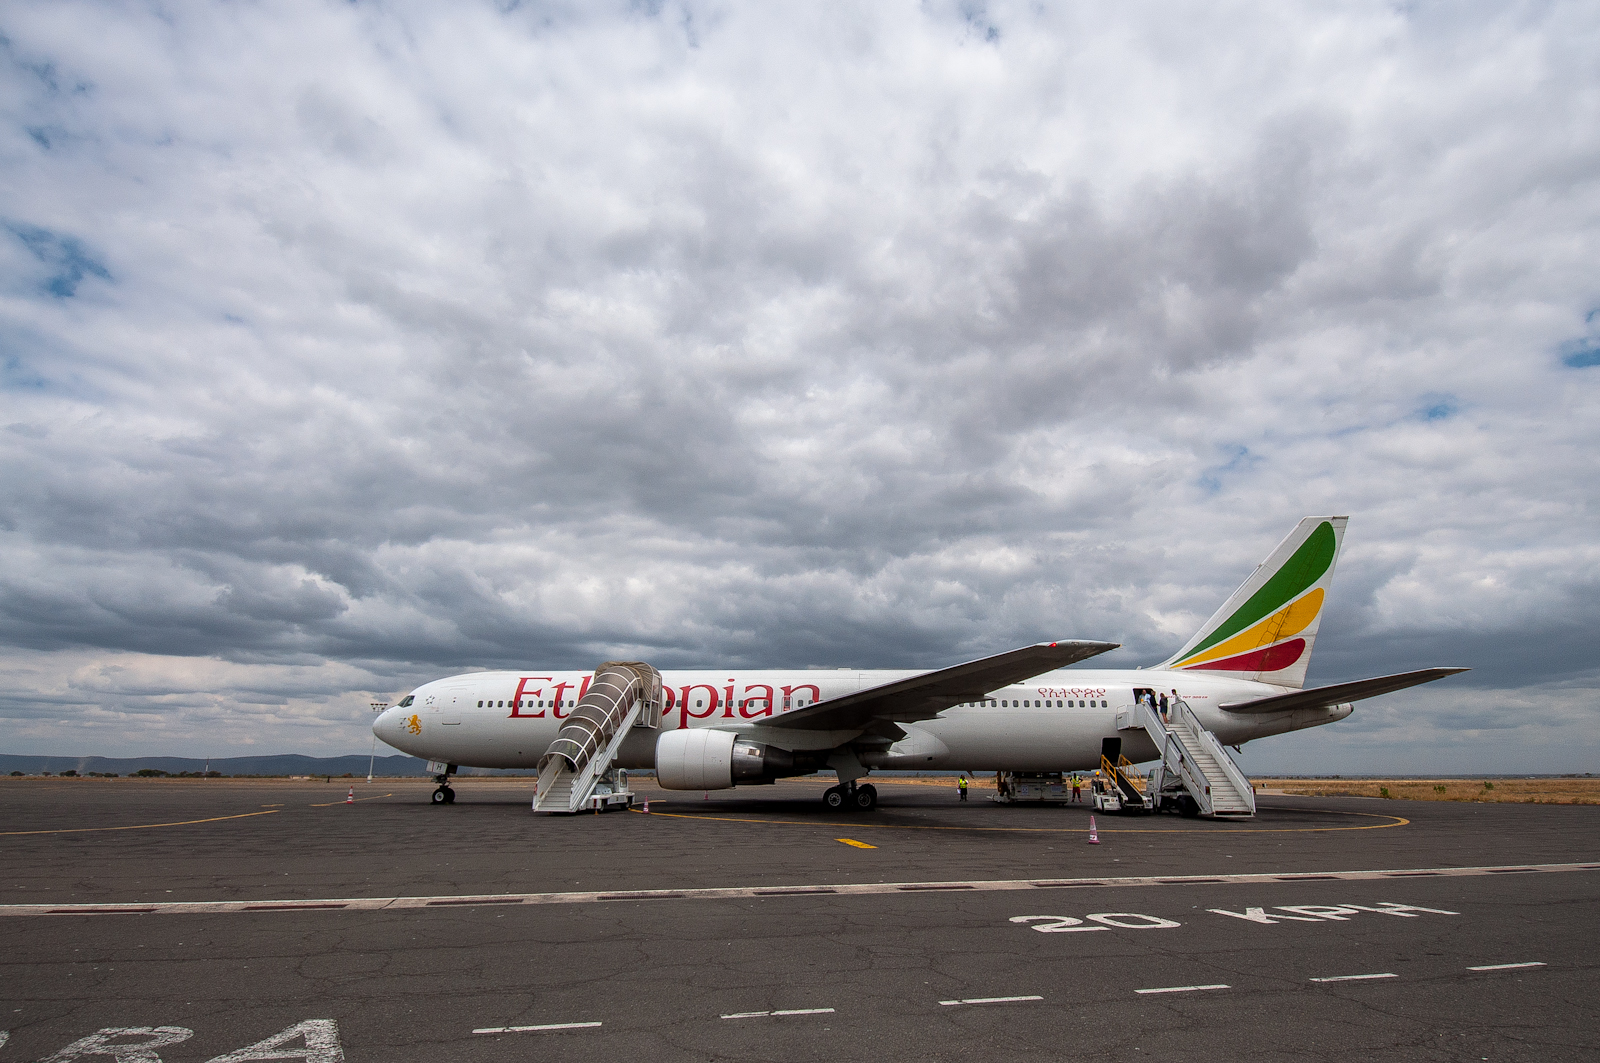 ethiopian airline mission vission Ethiopian the largest network cargo operator in africa with a vision to be the most competitive and leading cargo airline in the world.